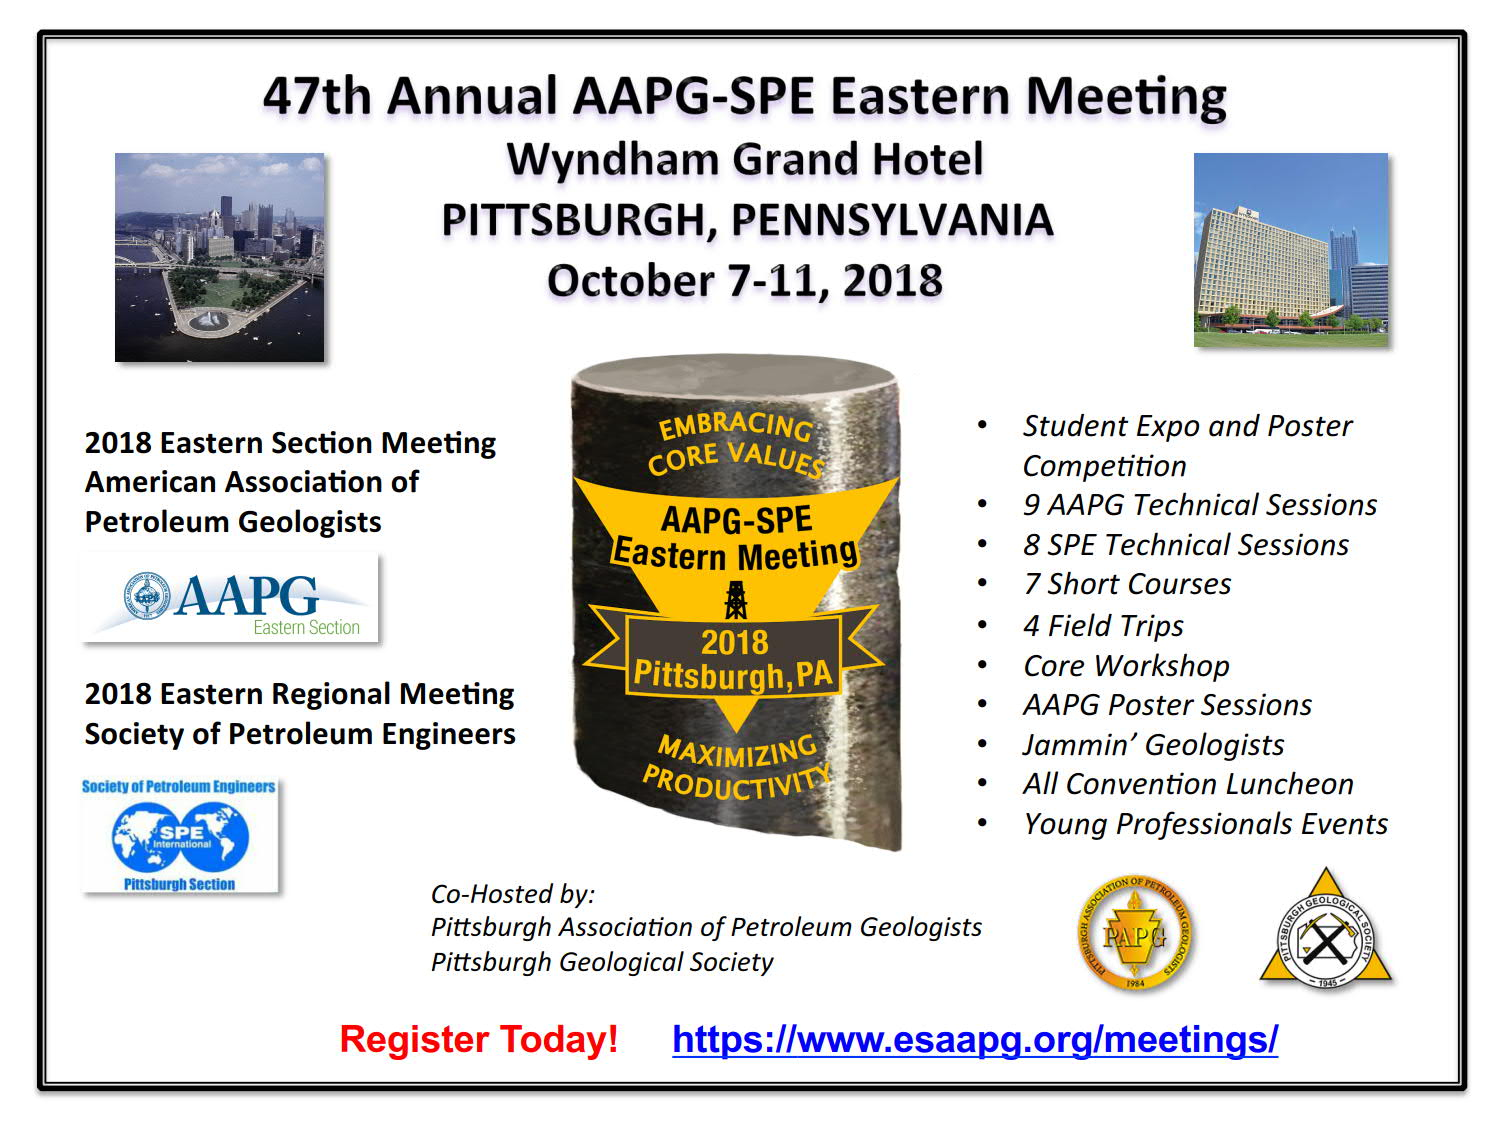 es2018-annual-meeting-flyer-r2_1